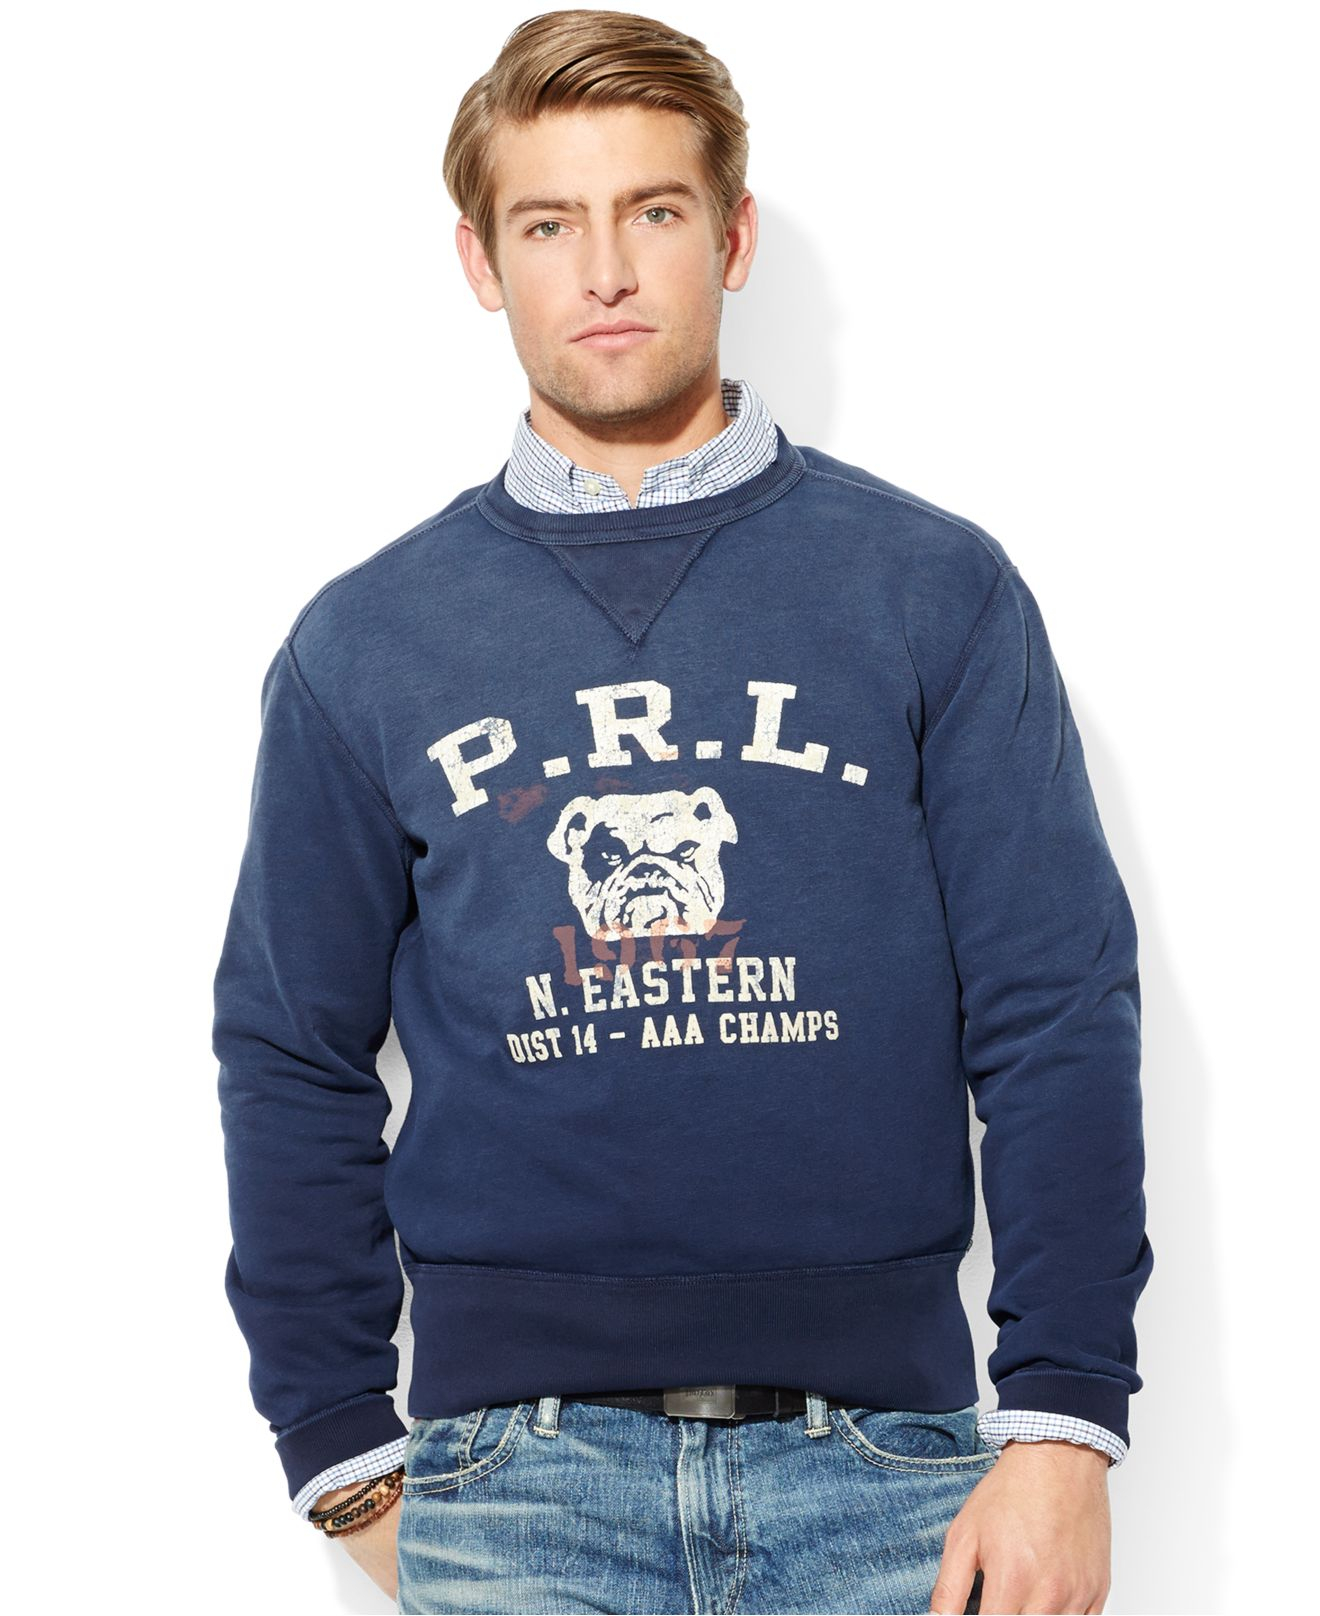 polo ralph lauren fleece bulldog sweatshirt in blue for men lyst. Black Bedroom Furniture Sets. Home Design Ideas